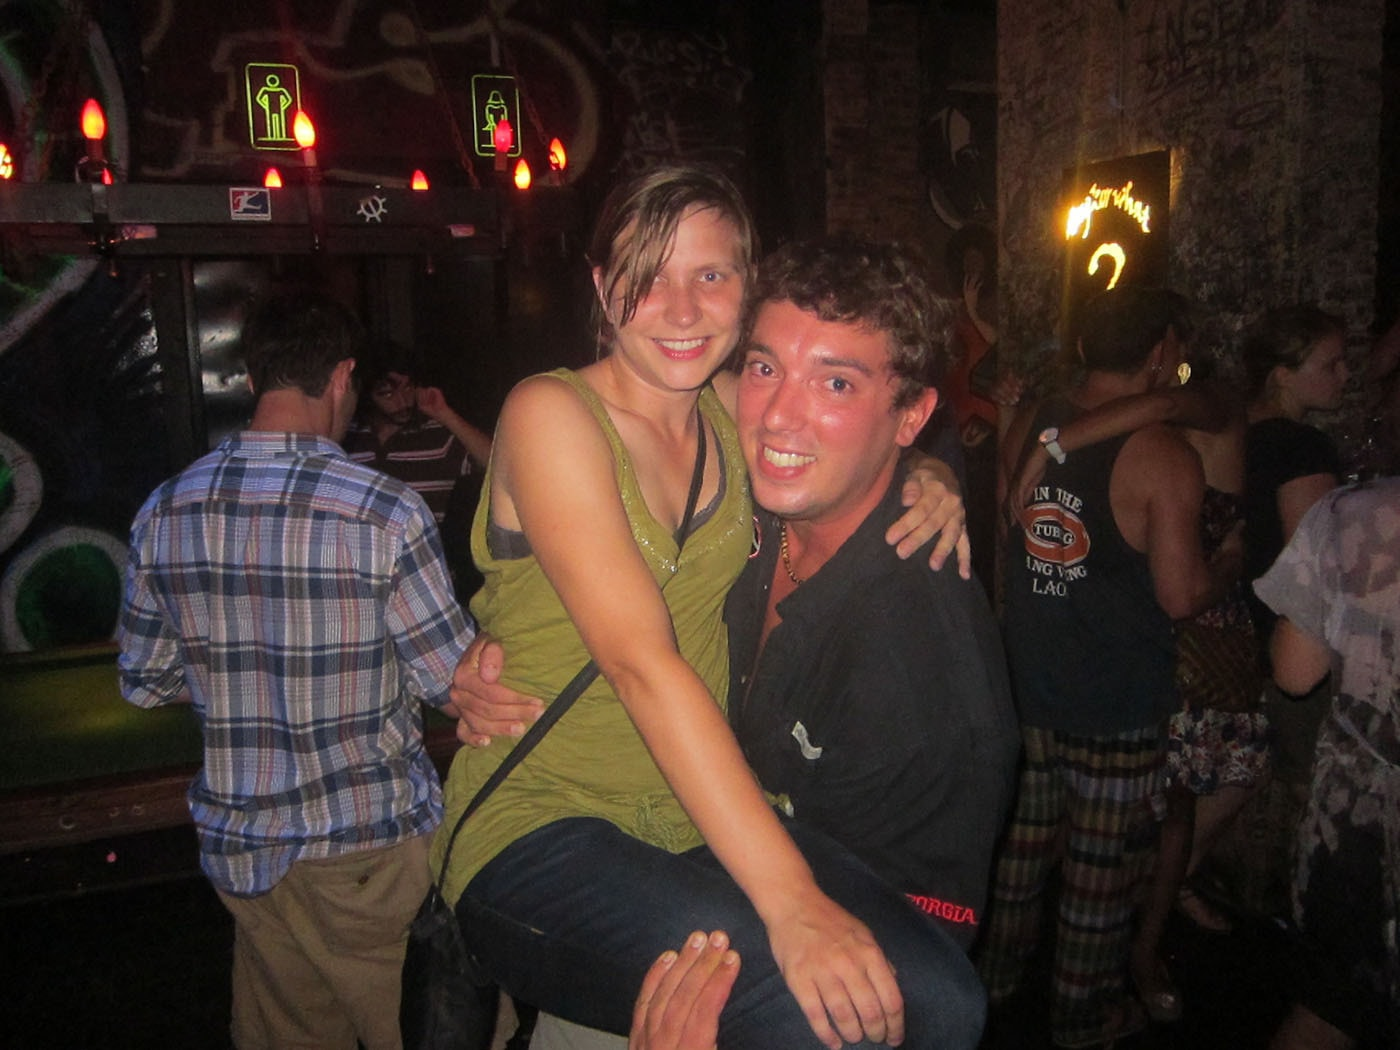 Nightlife in Siem Reap, Cambodia: Ankor What Bar